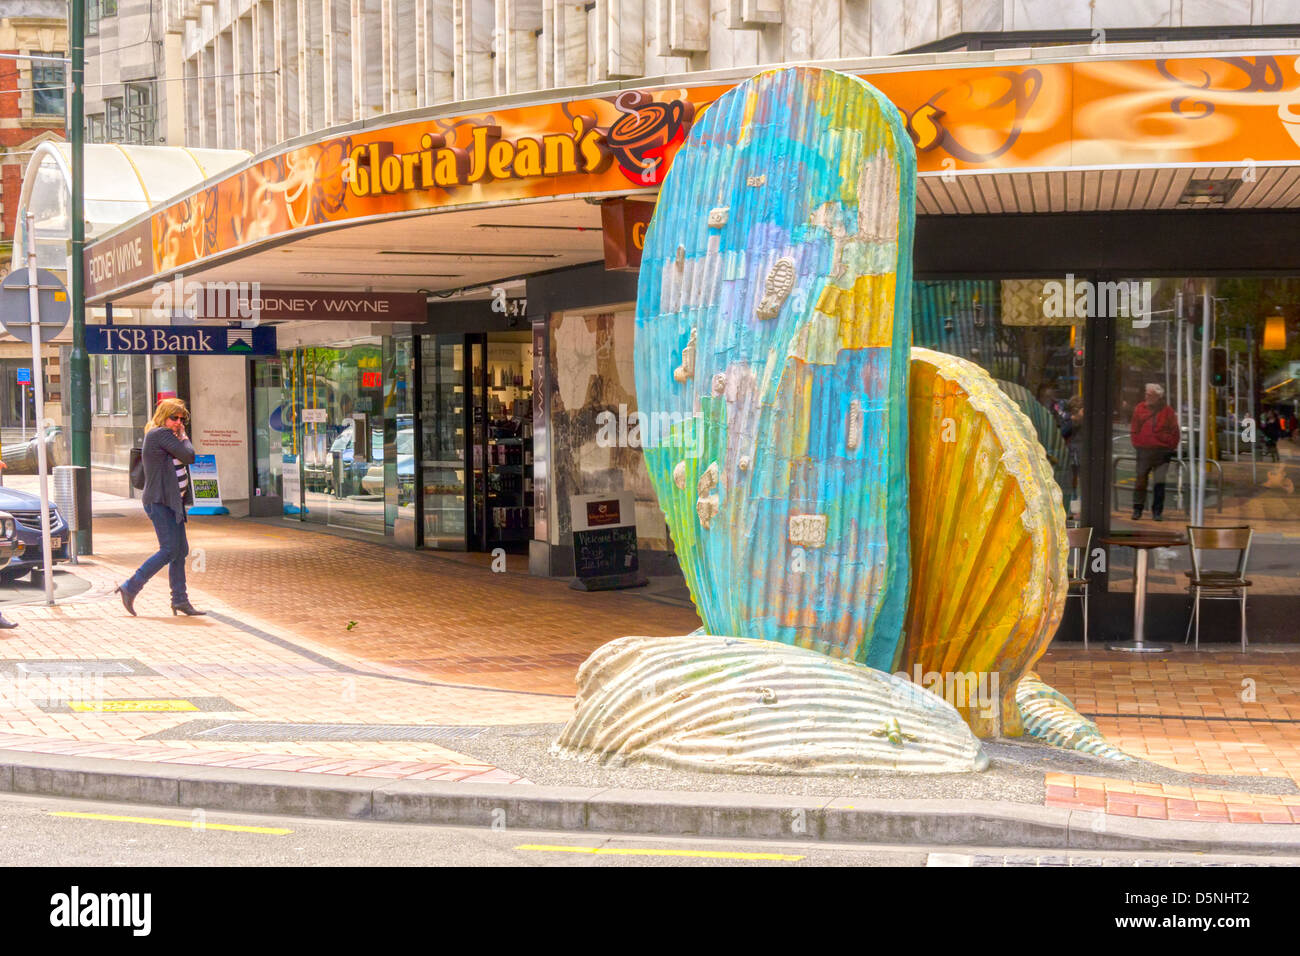 Shells sculpture by Jeff Thomson, corner of Waring Taylor Street and Lambton Quay - Stock Image